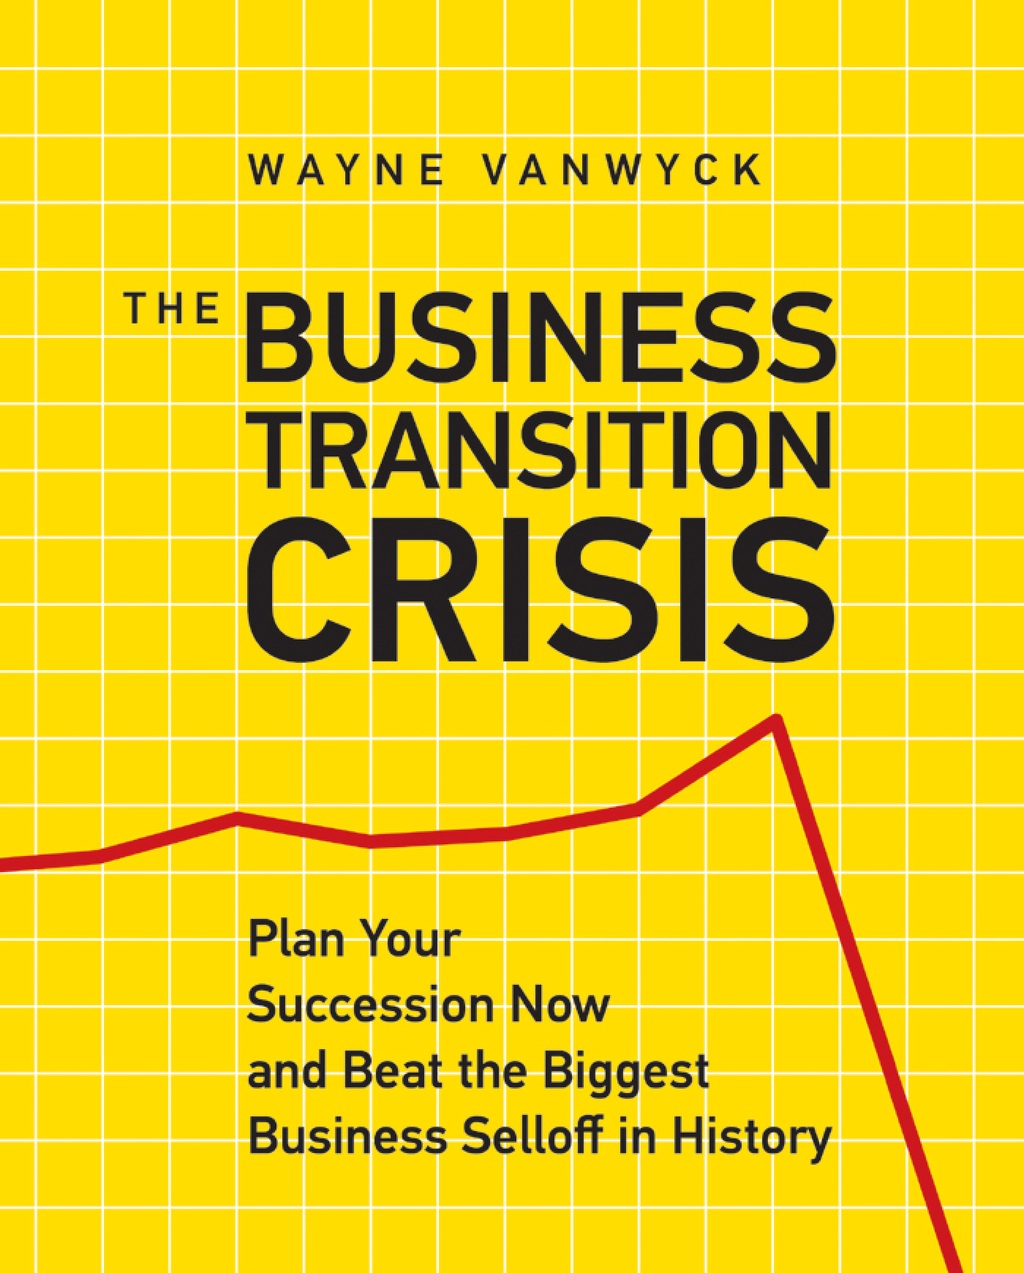 The Business Transition Crisis: Plan Your Succession Now to Beat the Biggest Business Selloff in History By: Wayne Vanwyck